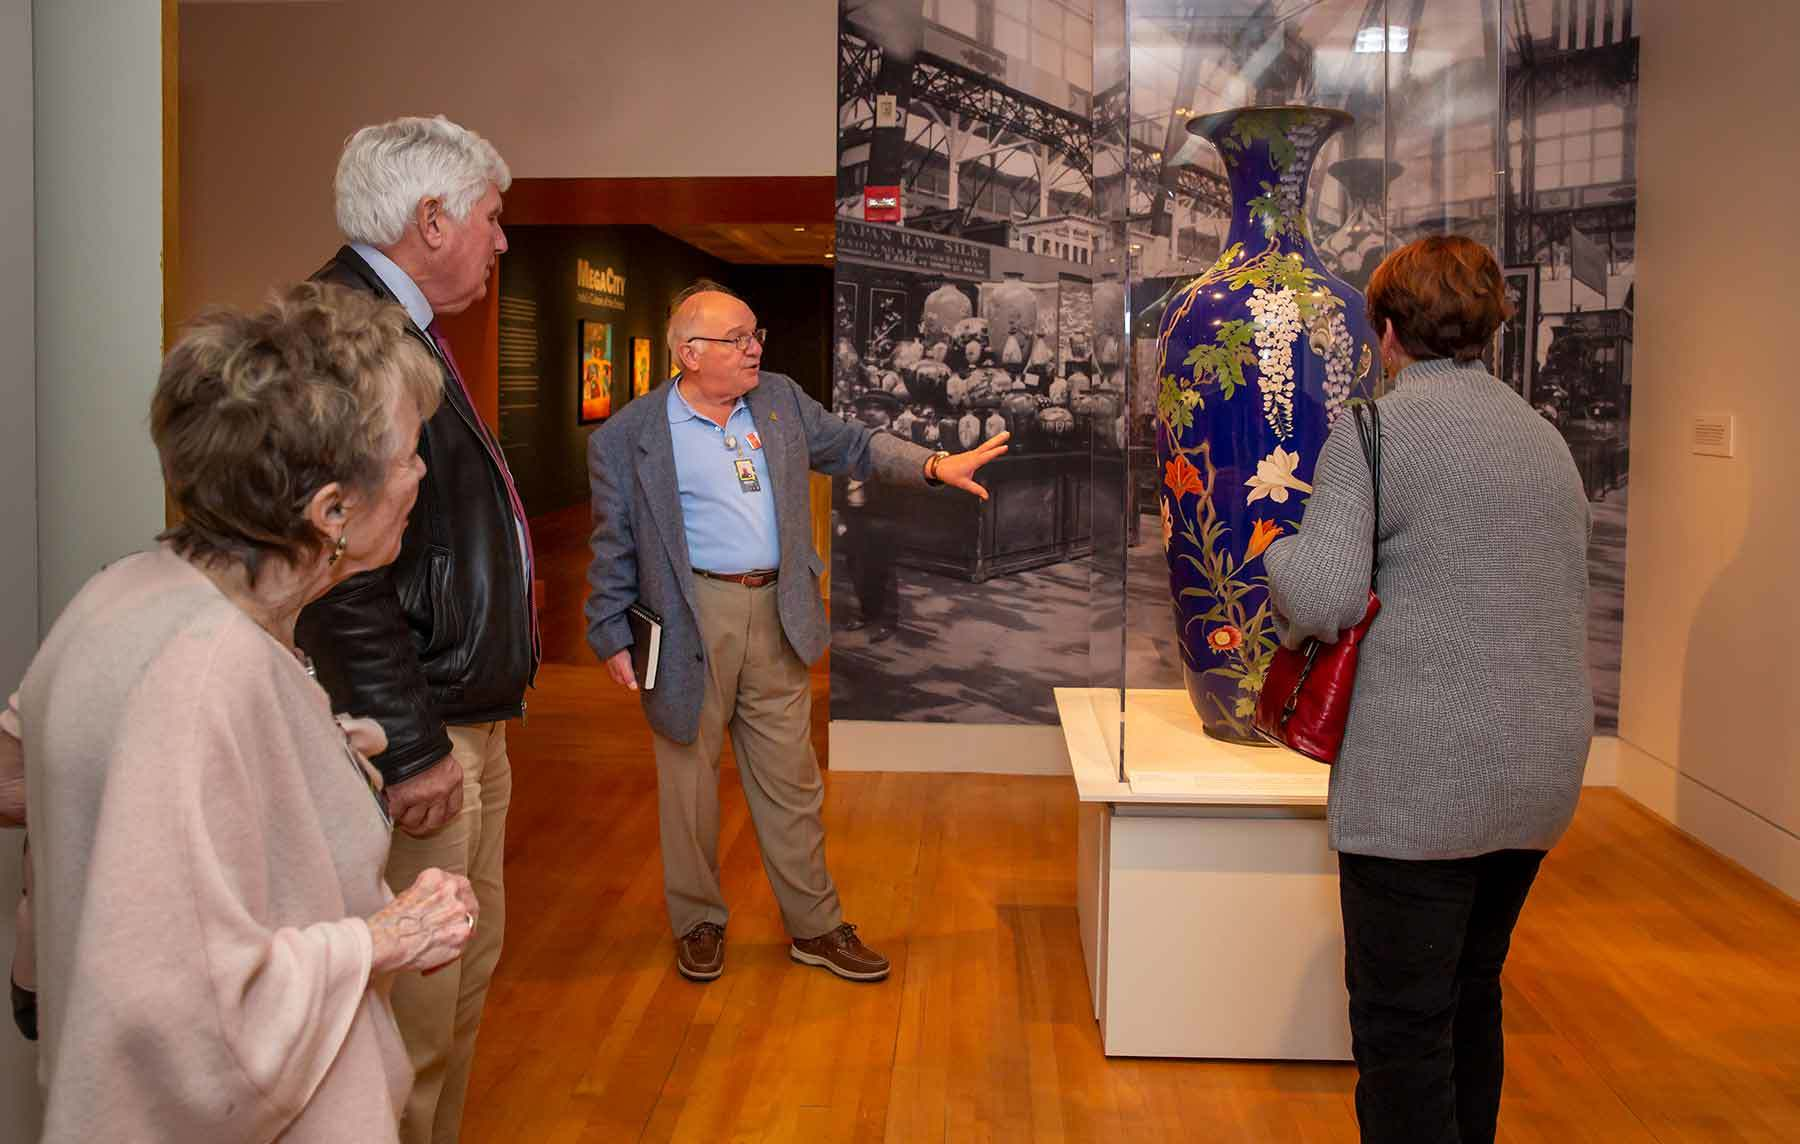 Meibaum leads a group of visitors in the museum